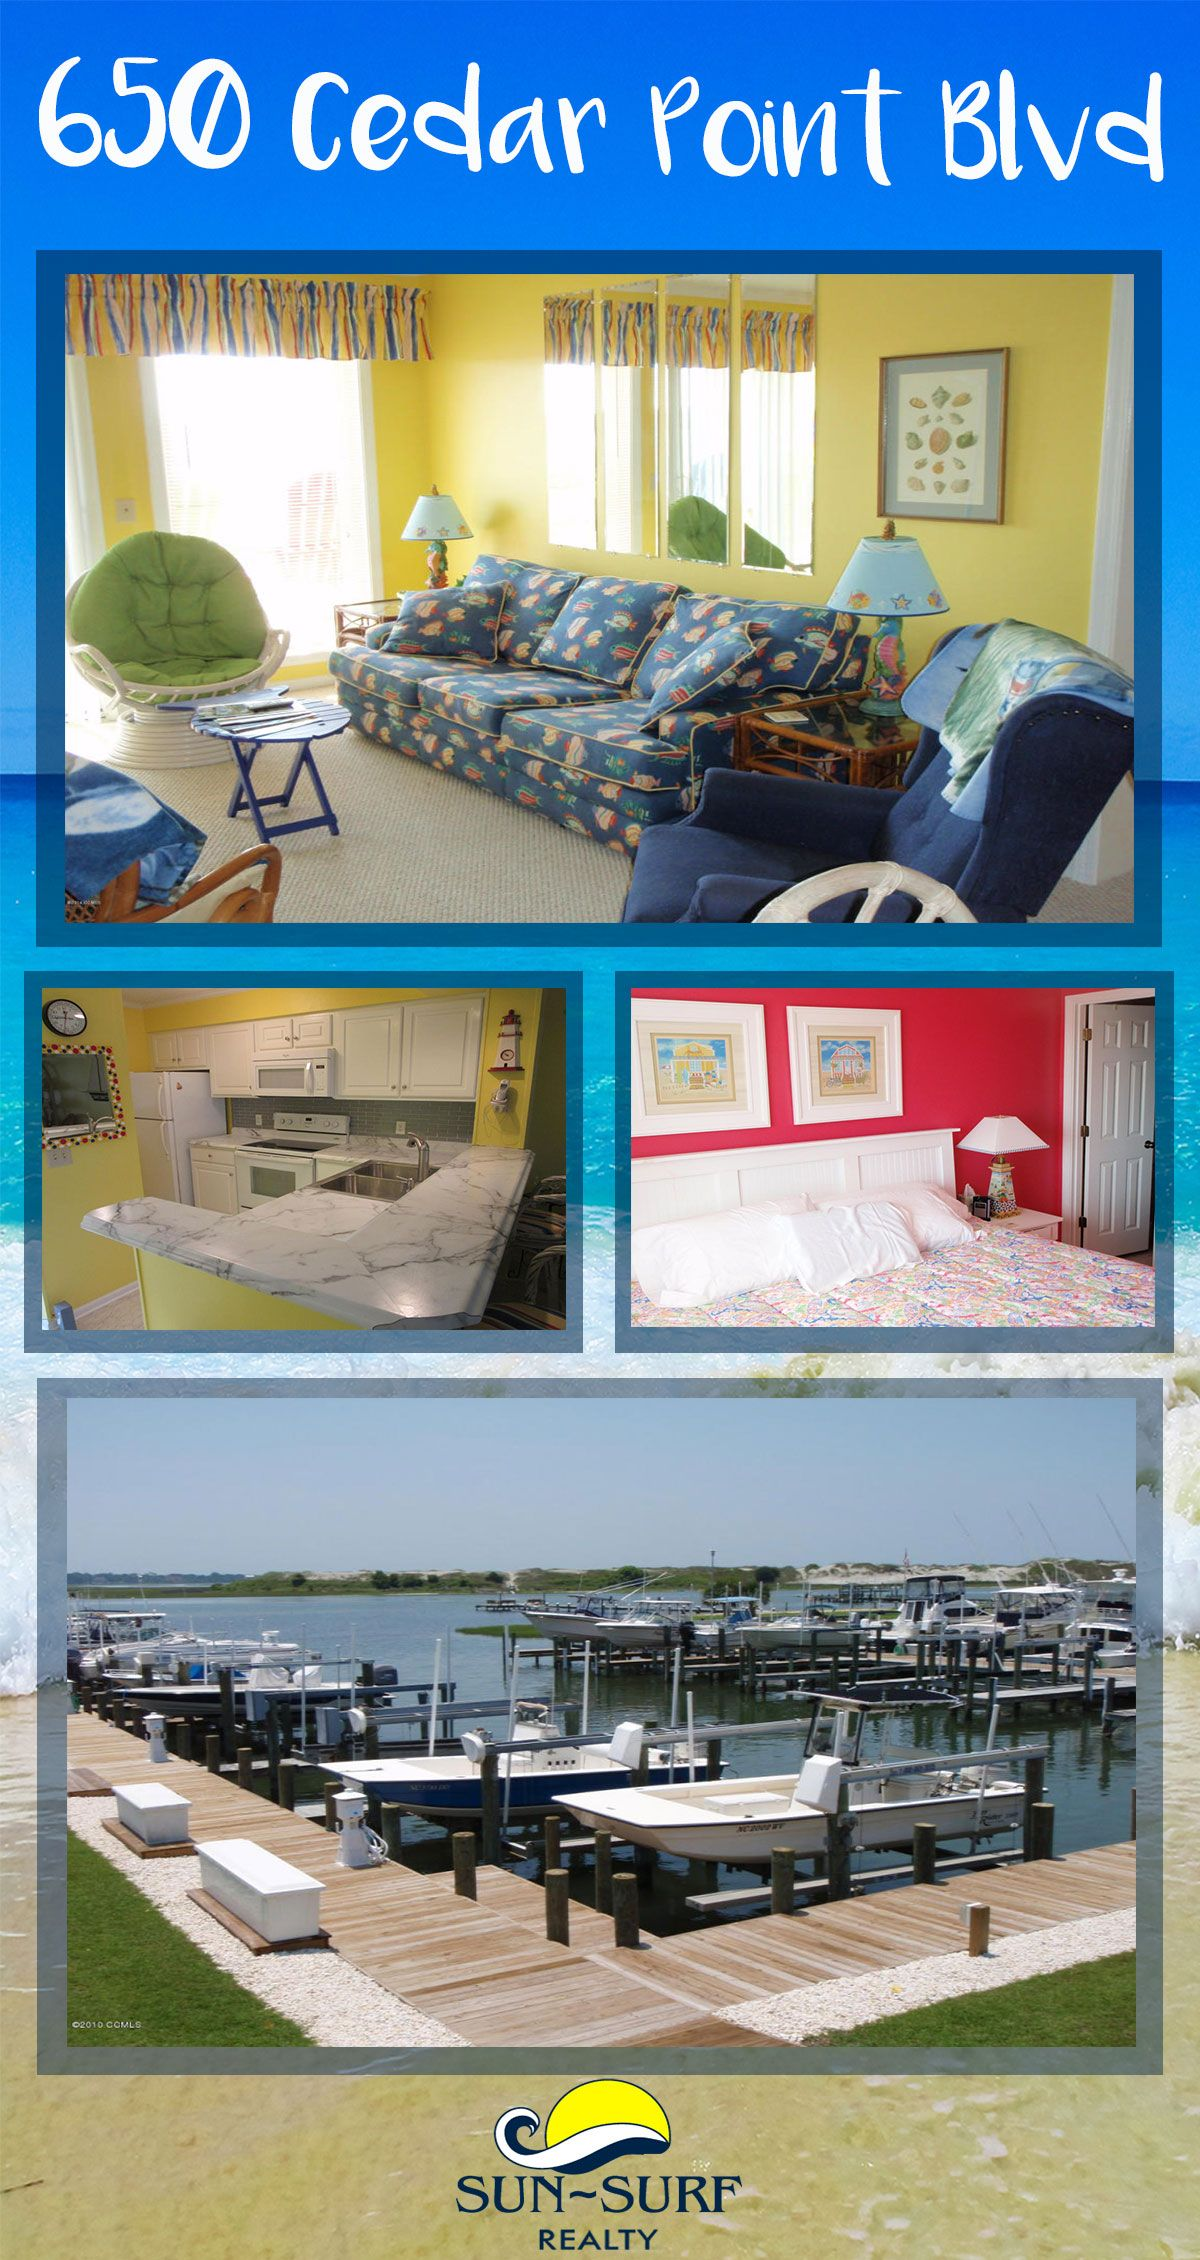 FOR SALE: This 2 bedroom, 2 bath condo is located in Cedar Point ...